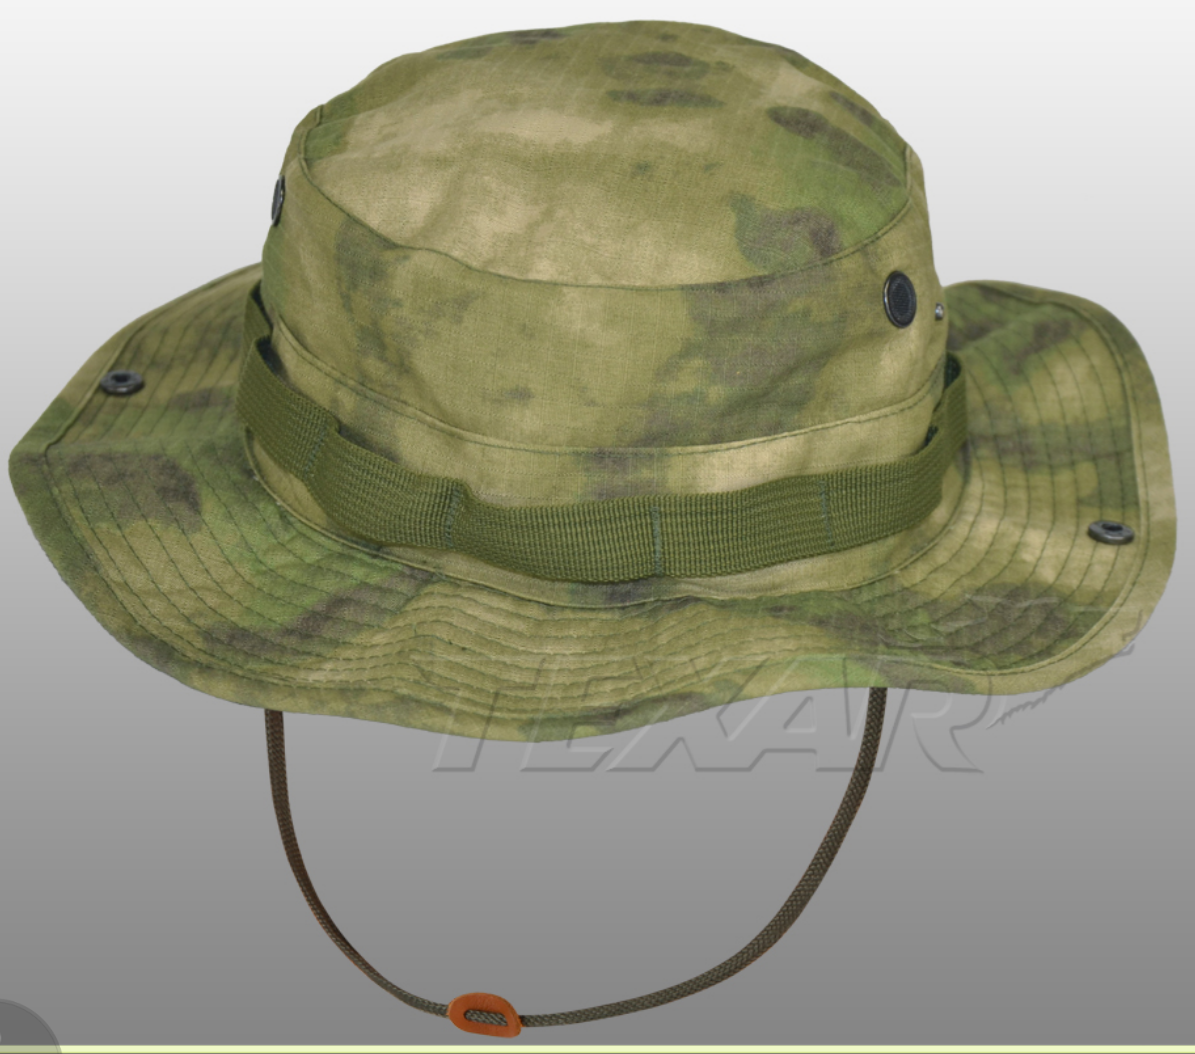 Klobouk jungle hat Texar fg camo